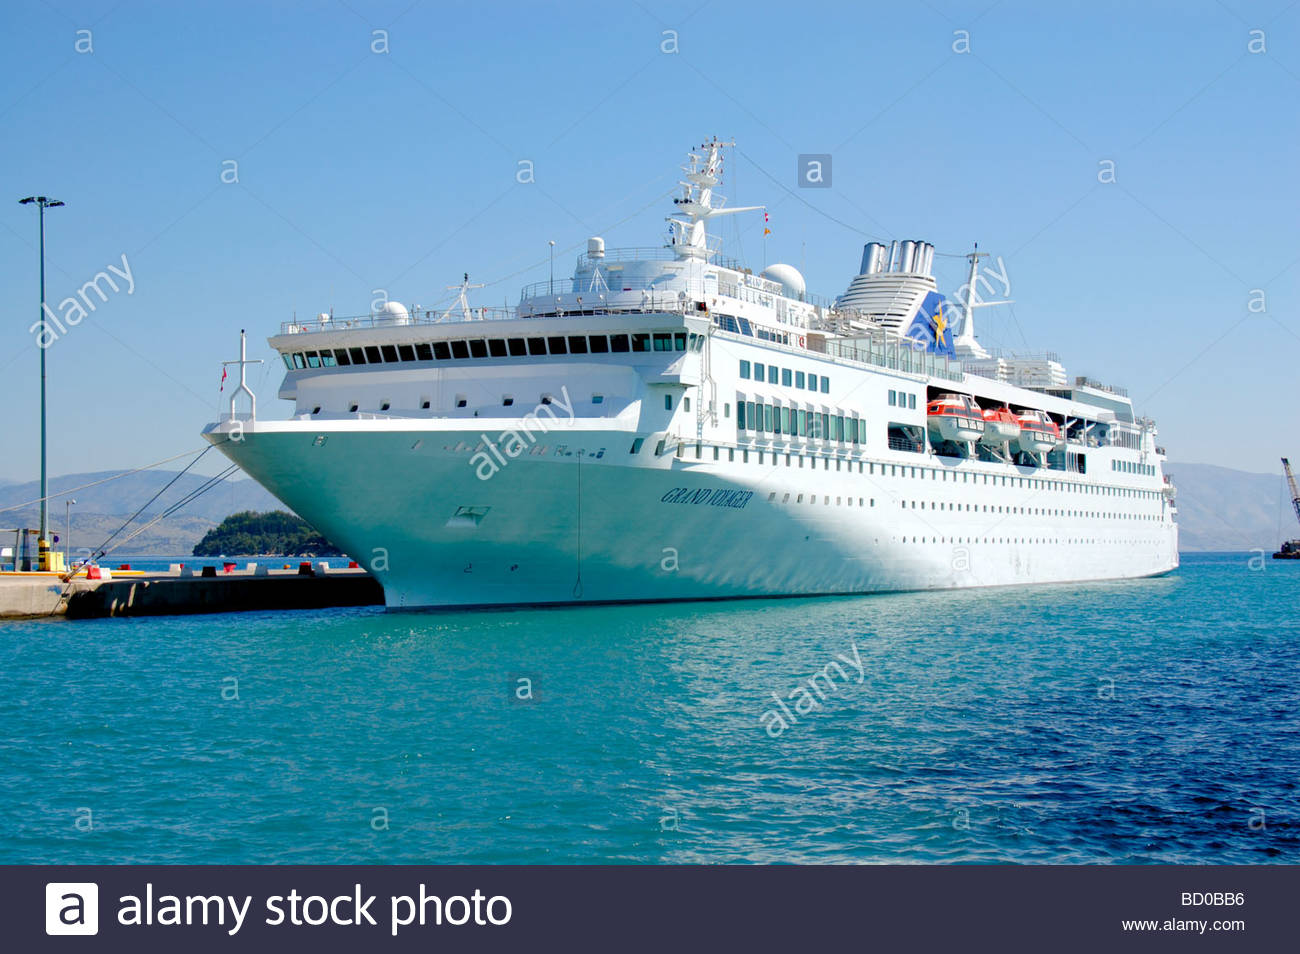 GRAND VOYAGER CRUISE SHIP IN CORFU GREECE Stock Photo Royalty - Grand voyager cruise ship